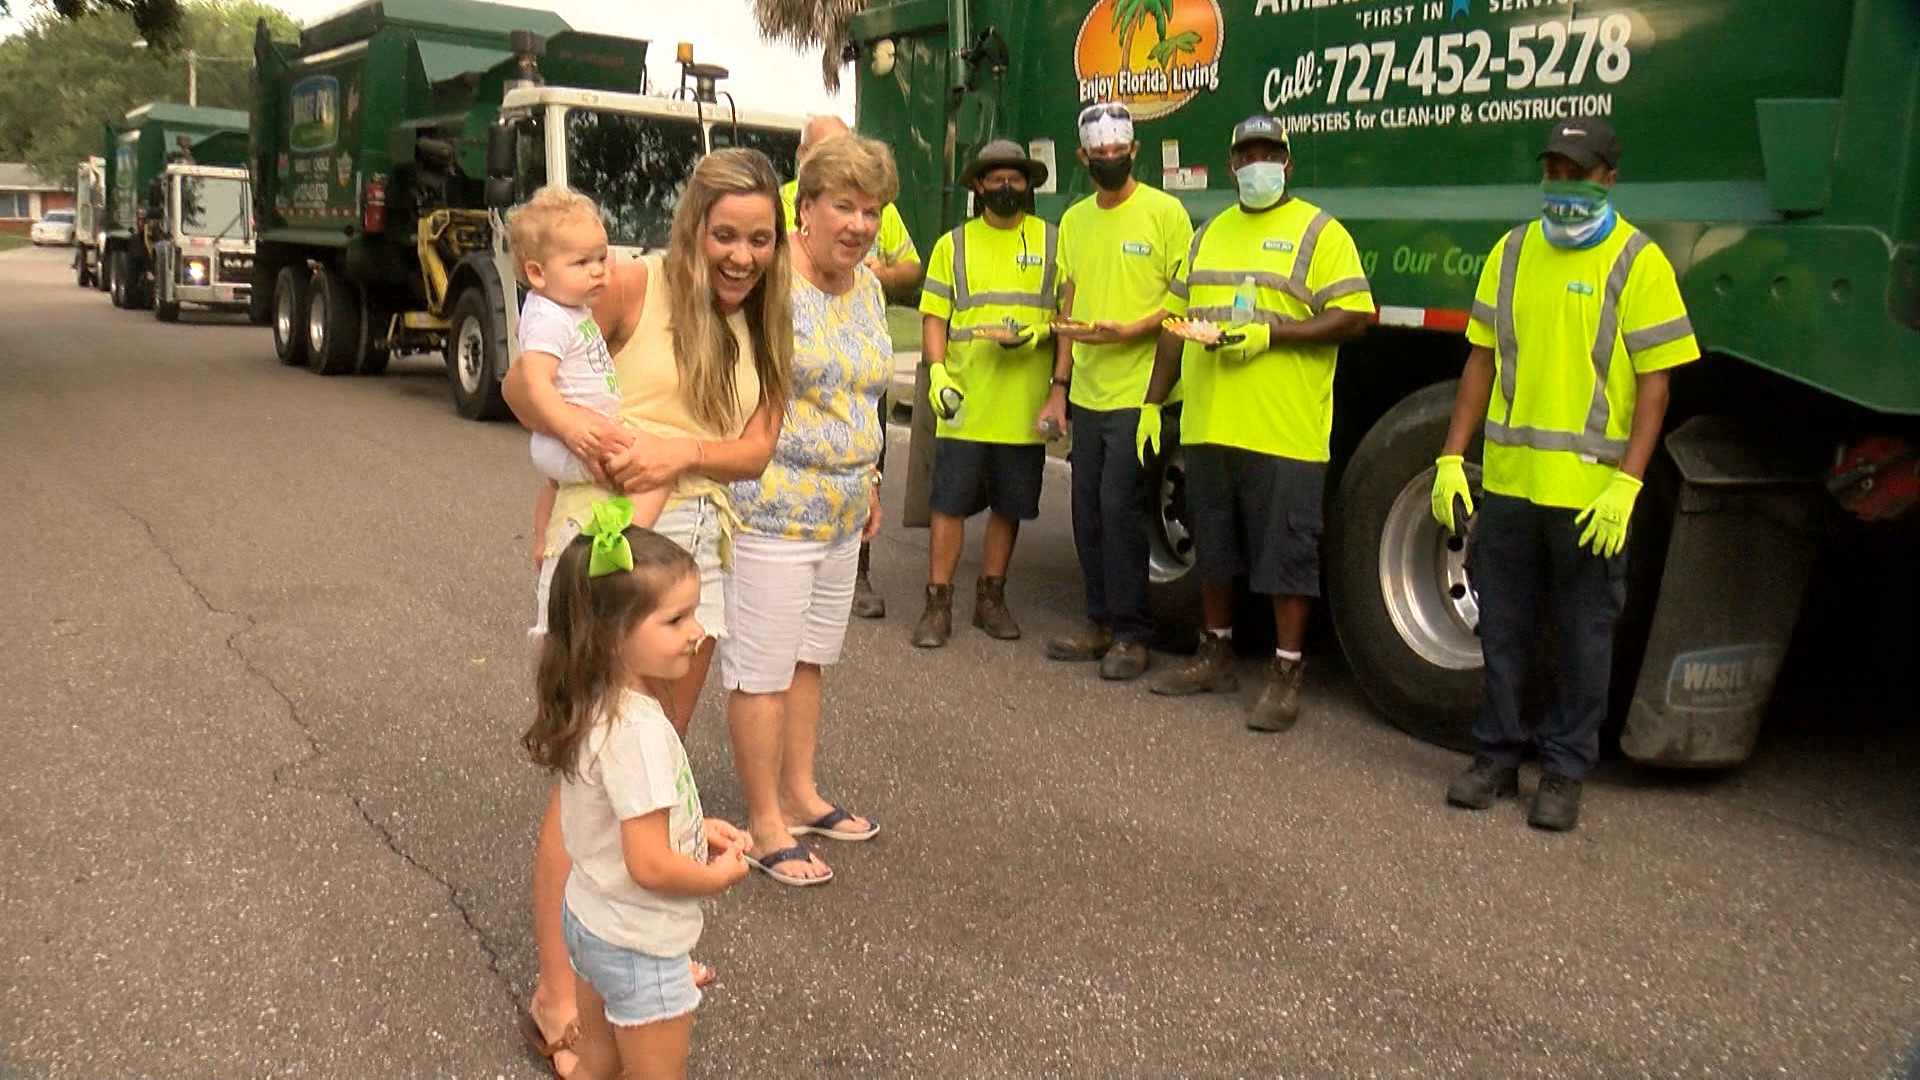 Florida sanitation workers surprise 4-year-old girl with garbage truck birthday parade